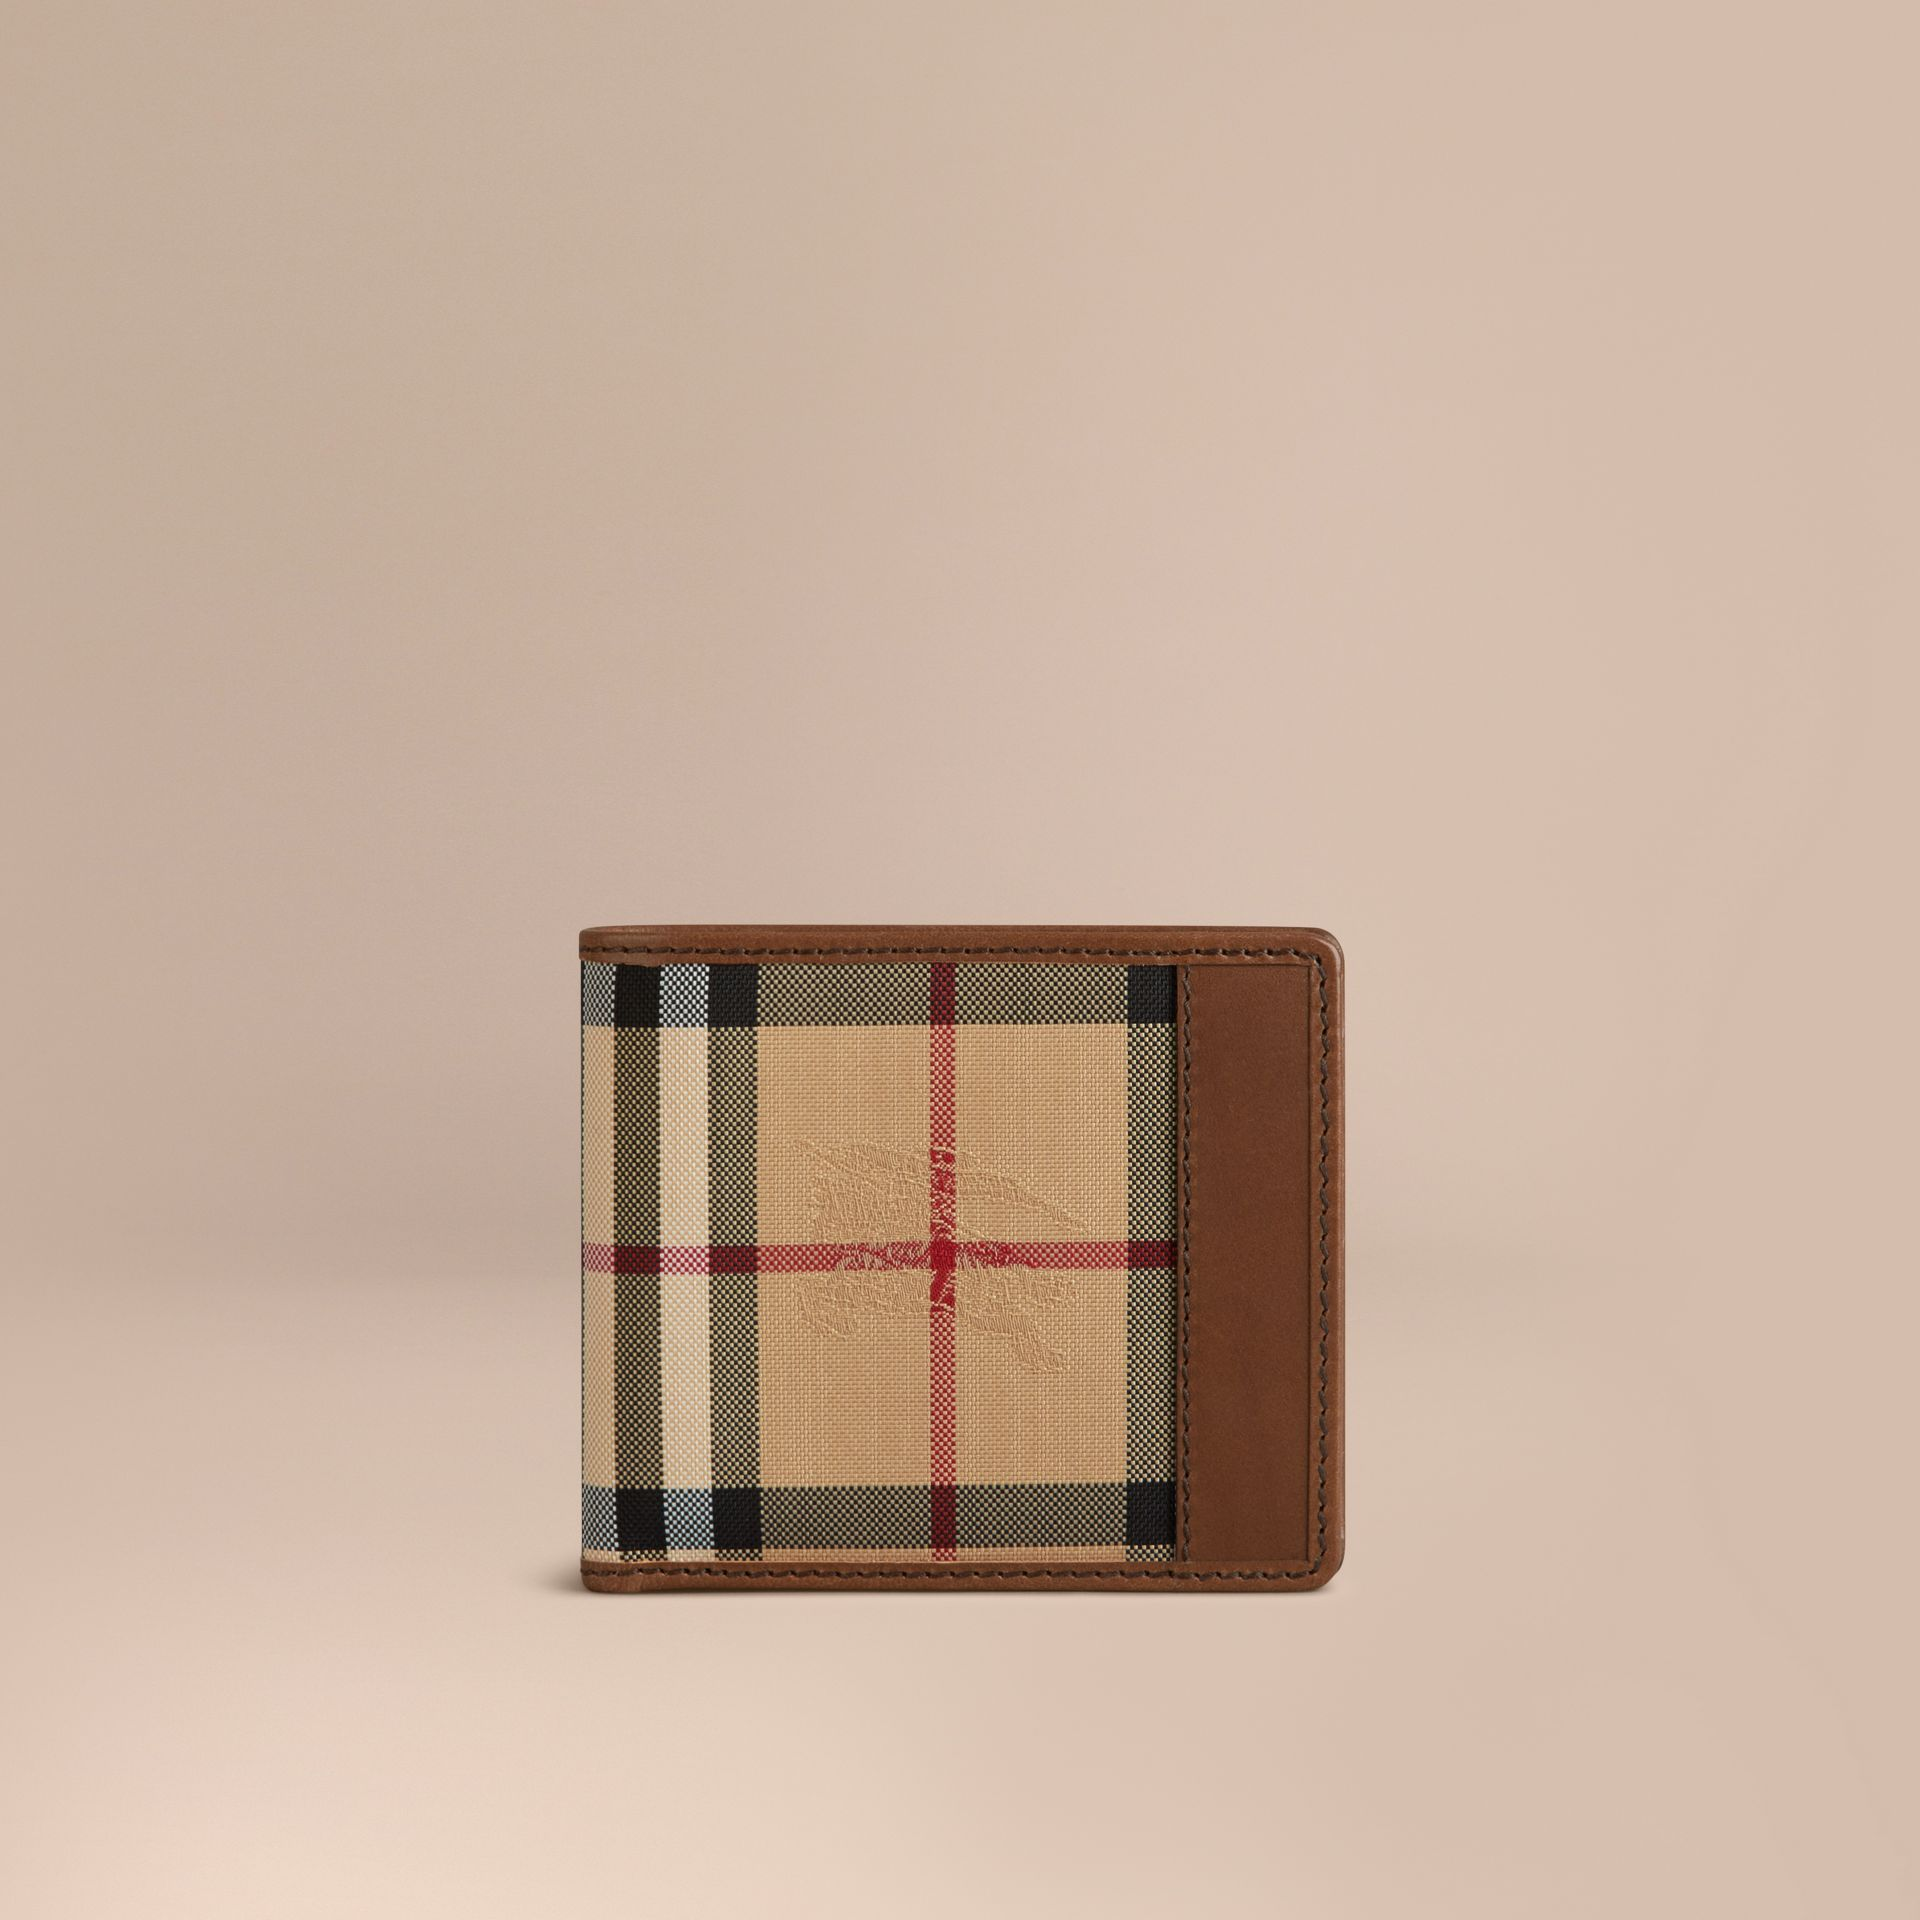 Horseferry Check International Bifold Wallet in Tan - Men | Burberry - gallery image 1